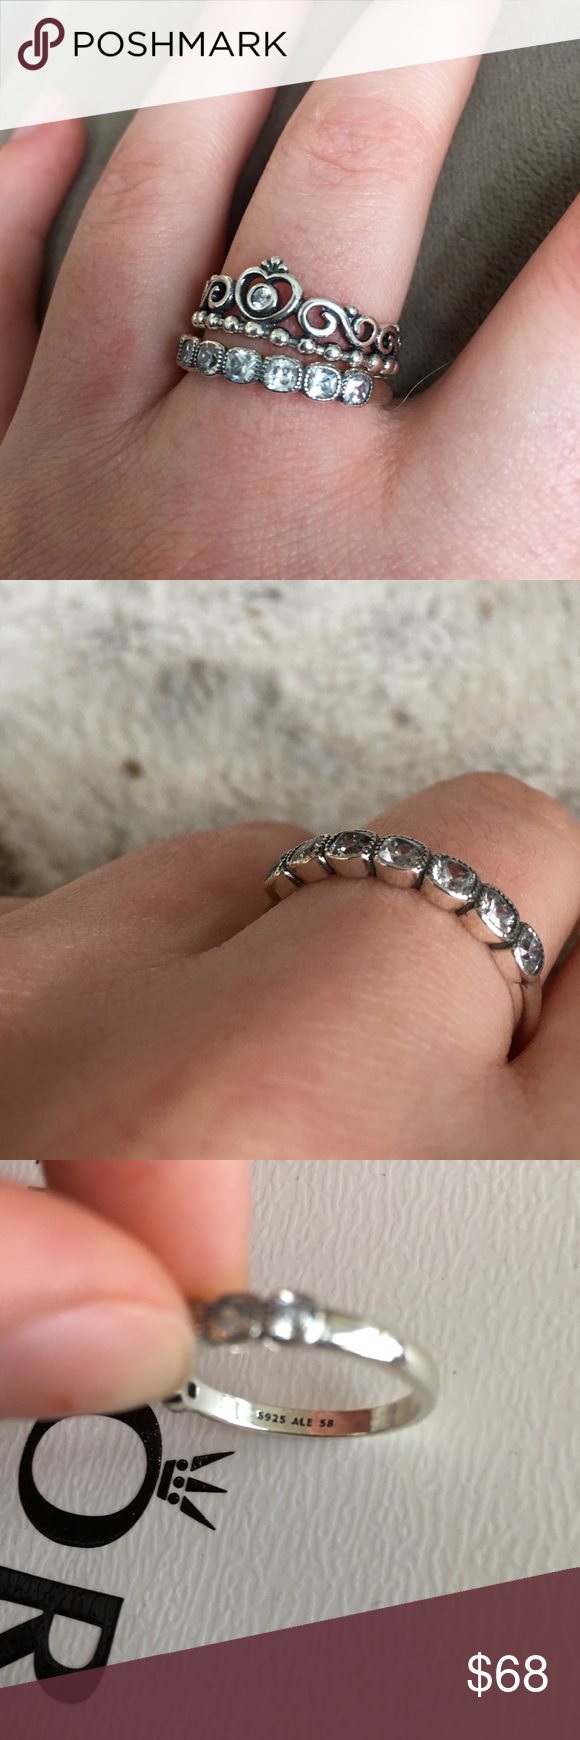 0dafa6517 Pandora Ring Alluring Cushion BRAND NEW w/ BOX AND SHOPPING BAG Authentic,  photos show details & signature markings but if you'd like more pics let me  know, ...